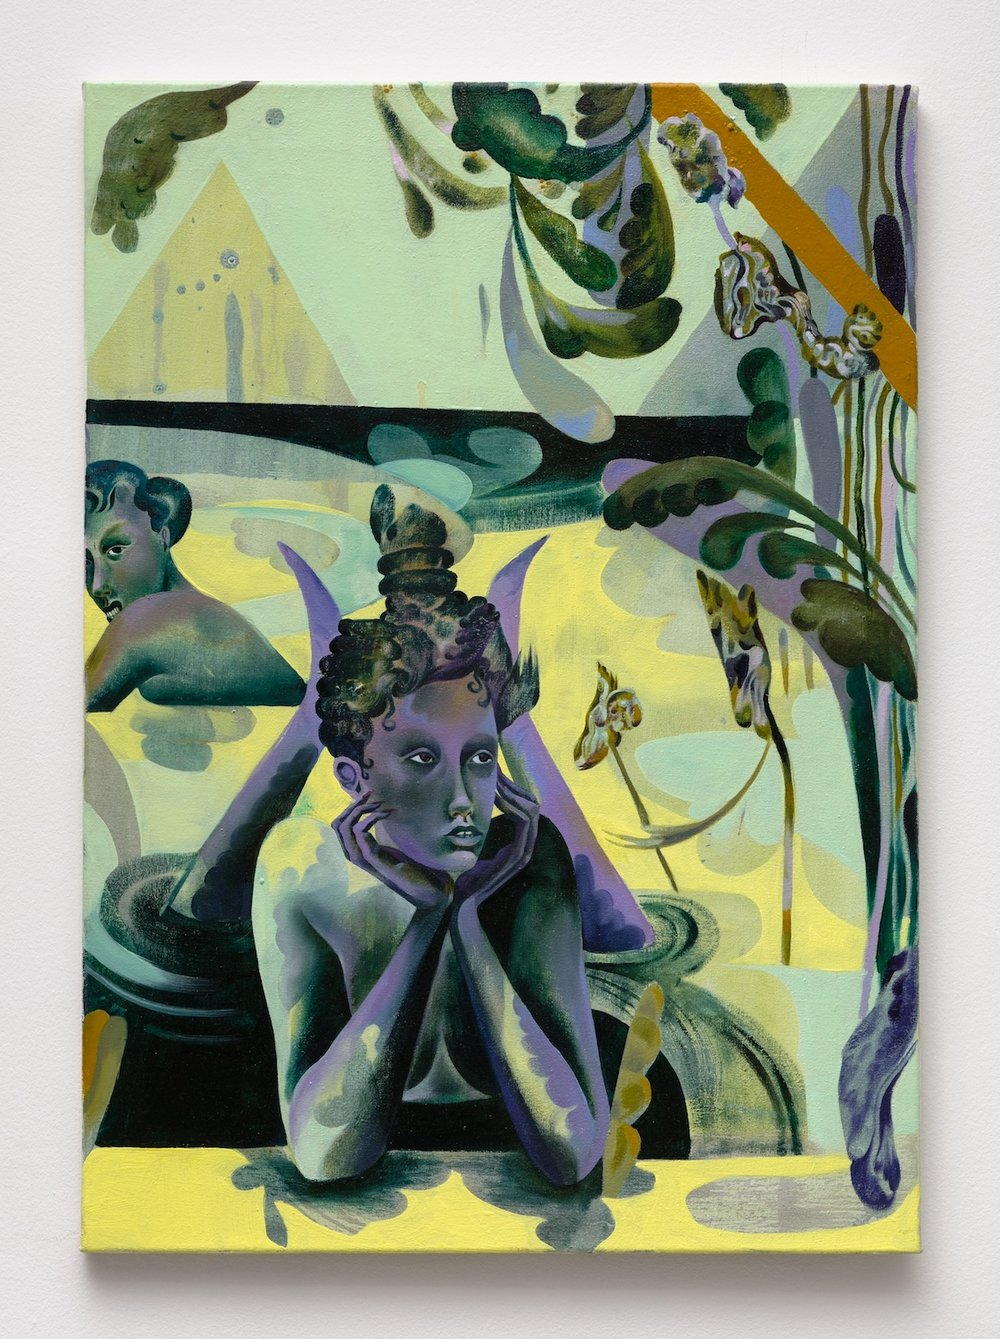 Jessie Makinson   Like a Villainelle , 2018  Oil on canvas  27.5 x 19.75 inches